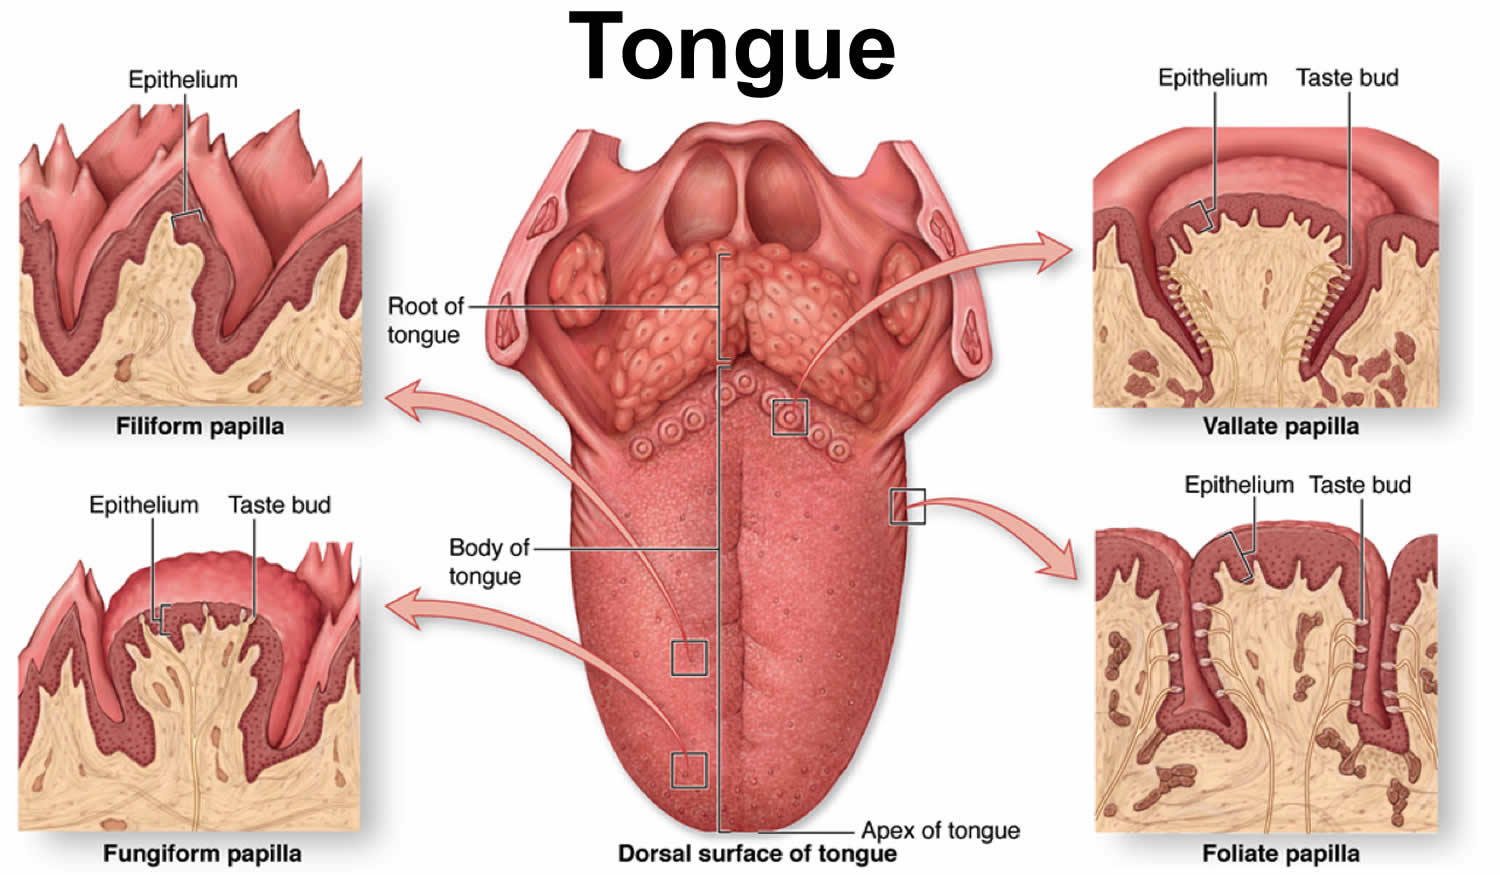 Tongue cancer causes, signs, symptoms, stages, prognosis and treatment